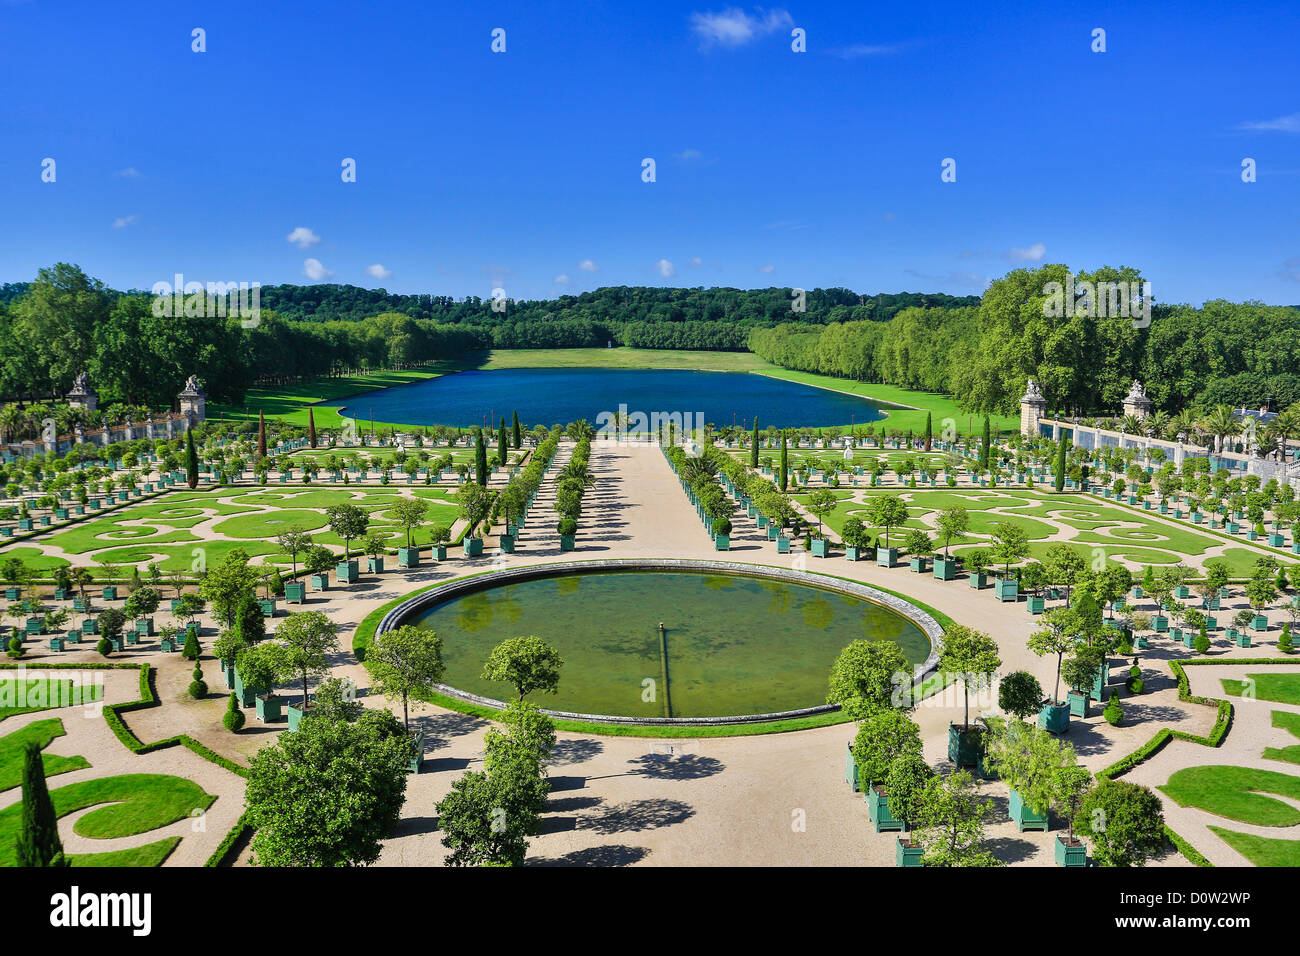 Inspiring France Europe Travel Versailles World Heritage Gardens  With Outstanding France Europe Travel Versailles World Heritage Gardens Detail  Architecture Park History Tourism Unesco With Beauteous Garden Centre Otley Also Urban Gardener In Addition Small Sloping Garden Designs And Shalimar Garden As Well As Garden Centre Chirk Additionally Wooden Garden Ornaments Uk From Alamycom With   Outstanding France Europe Travel Versailles World Heritage Gardens  With Beauteous France Europe Travel Versailles World Heritage Gardens Detail  Architecture Park History Tourism Unesco And Inspiring Garden Centre Otley Also Urban Gardener In Addition Small Sloping Garden Designs From Alamycom